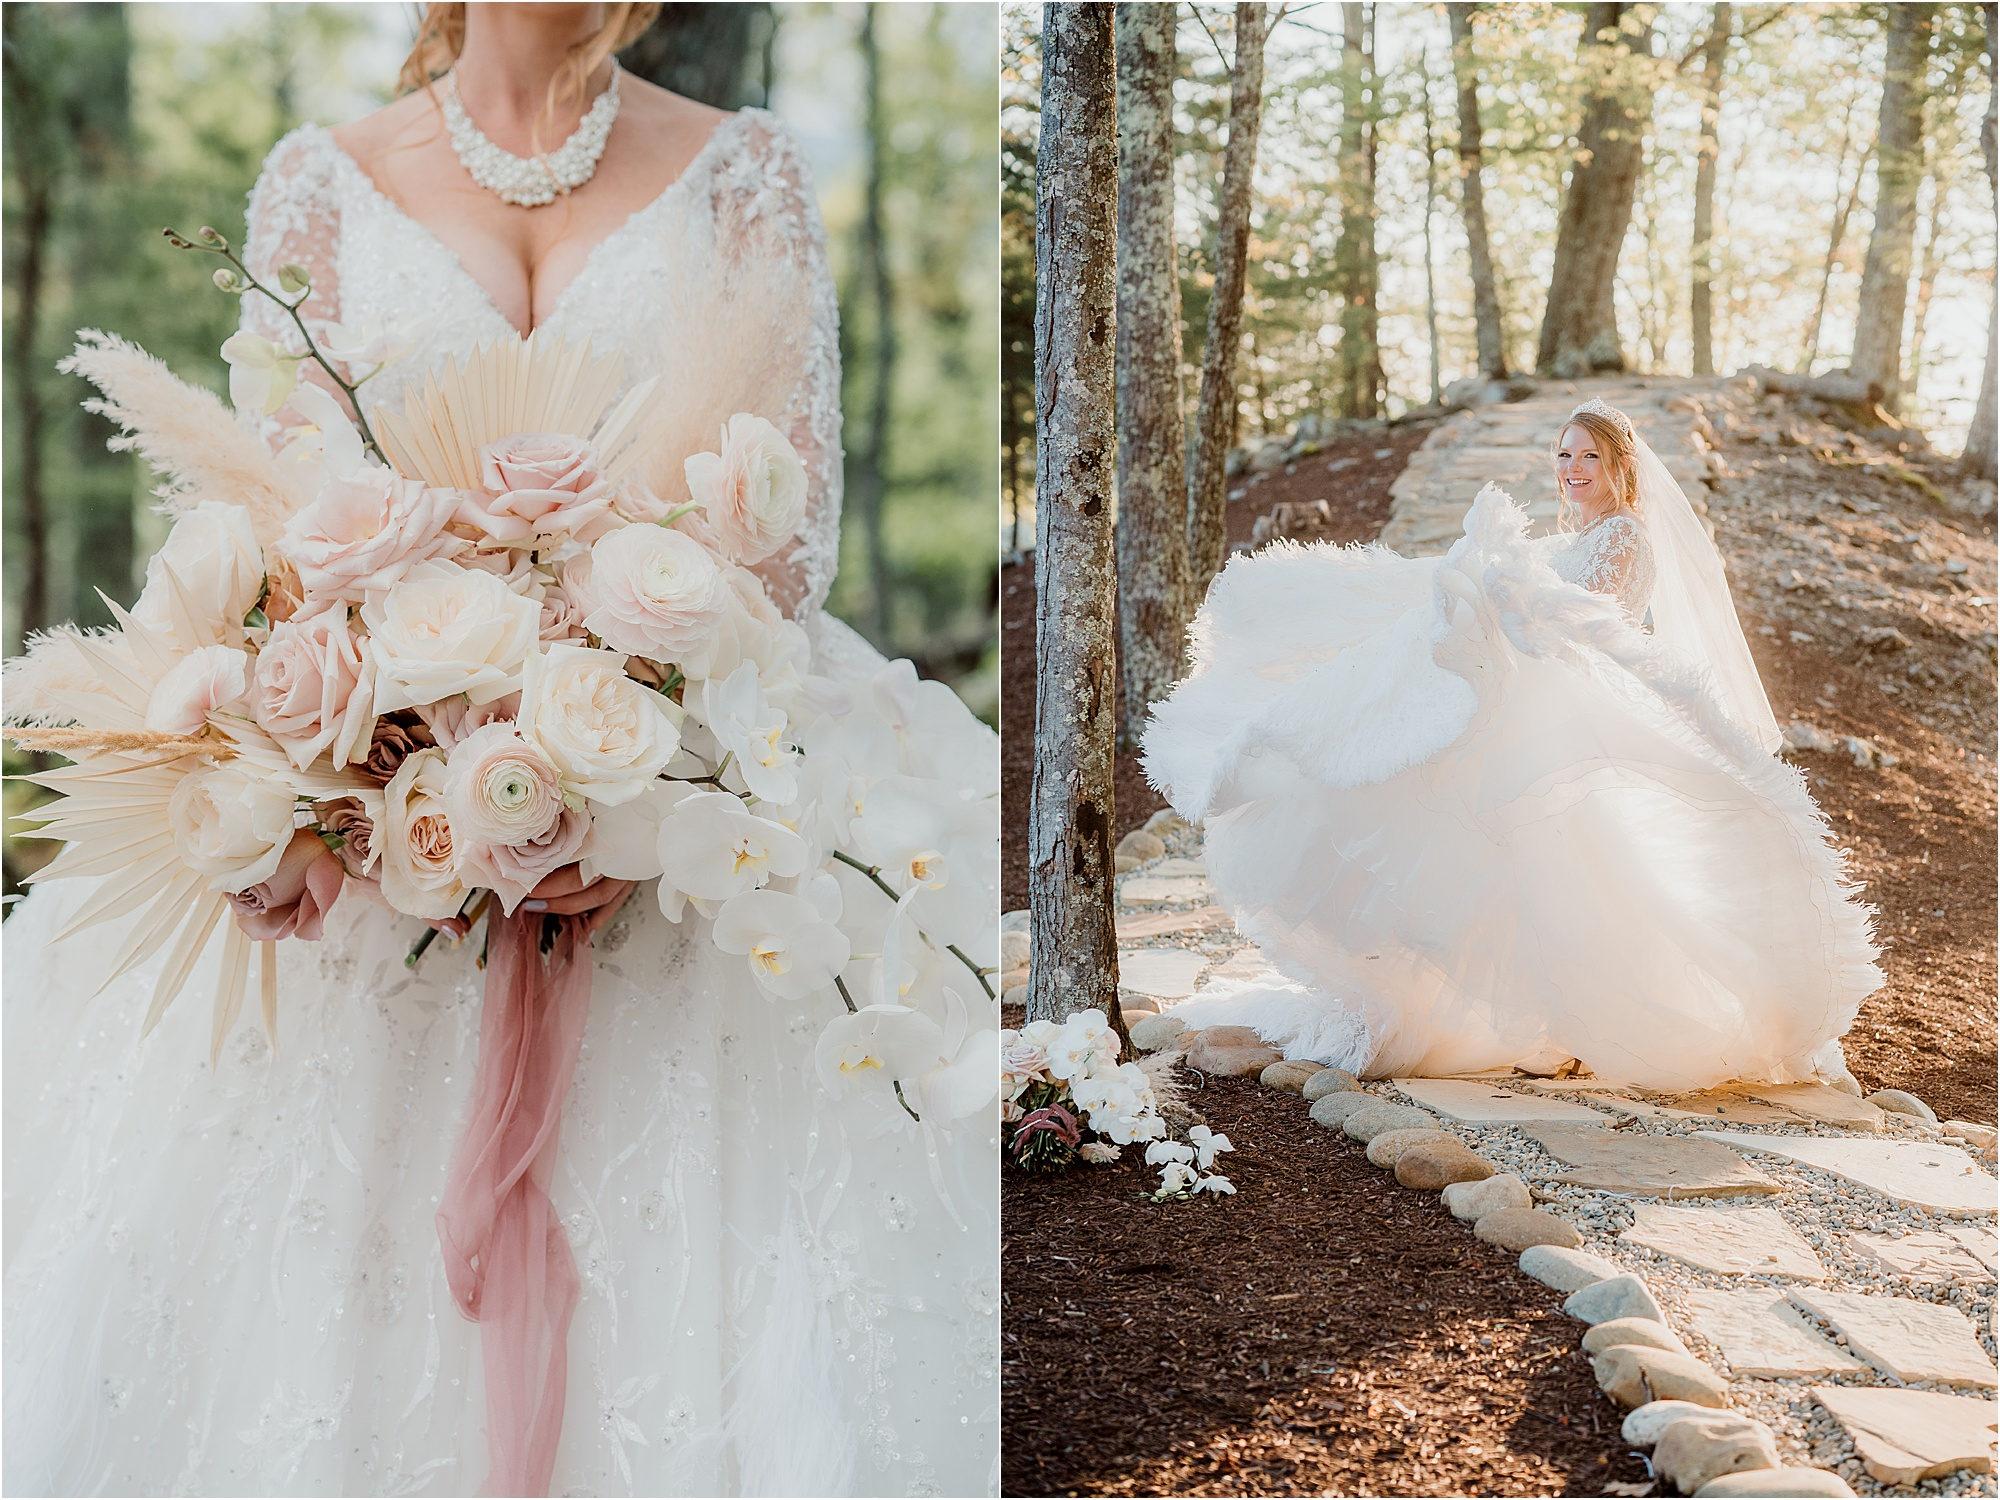 Fairytale wedding flowers and gown